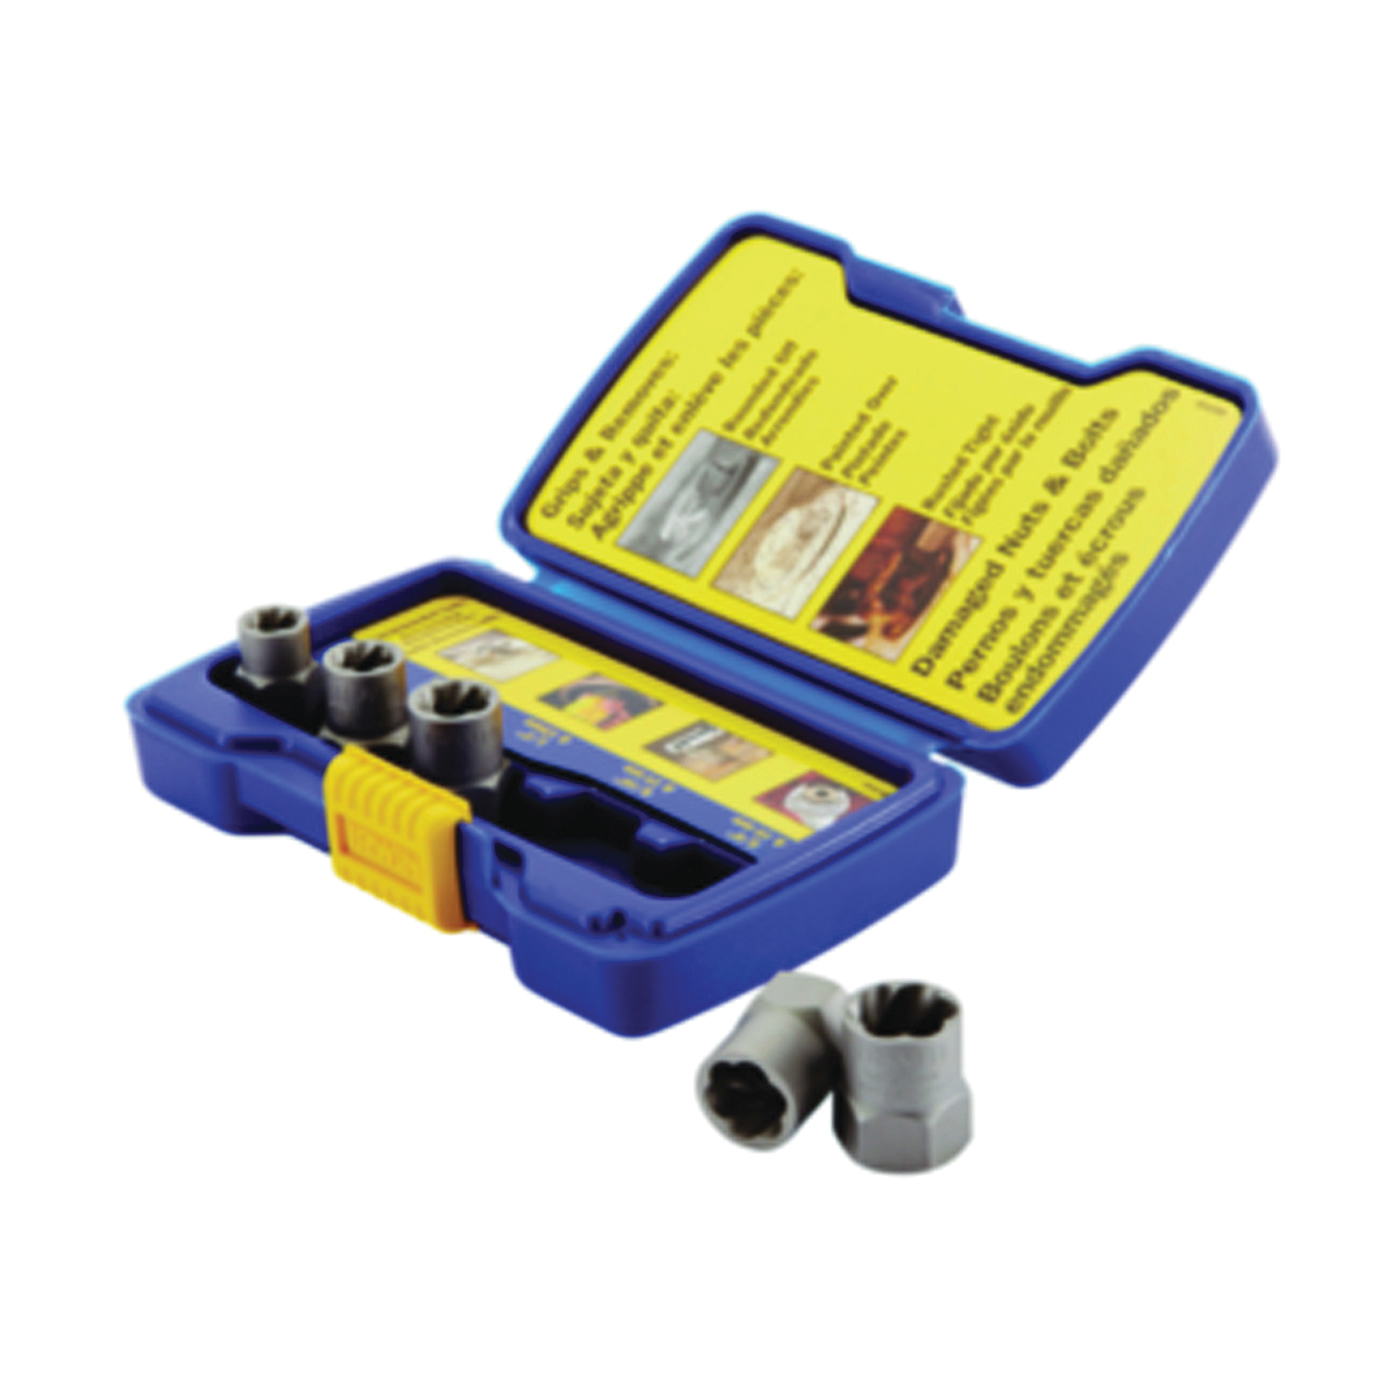 Picture of IRWIN BOLT-GRIP 394001 Bolt Extractor Set, 5 -Piece, HCS, Specifications: Reverse Spiral Flute